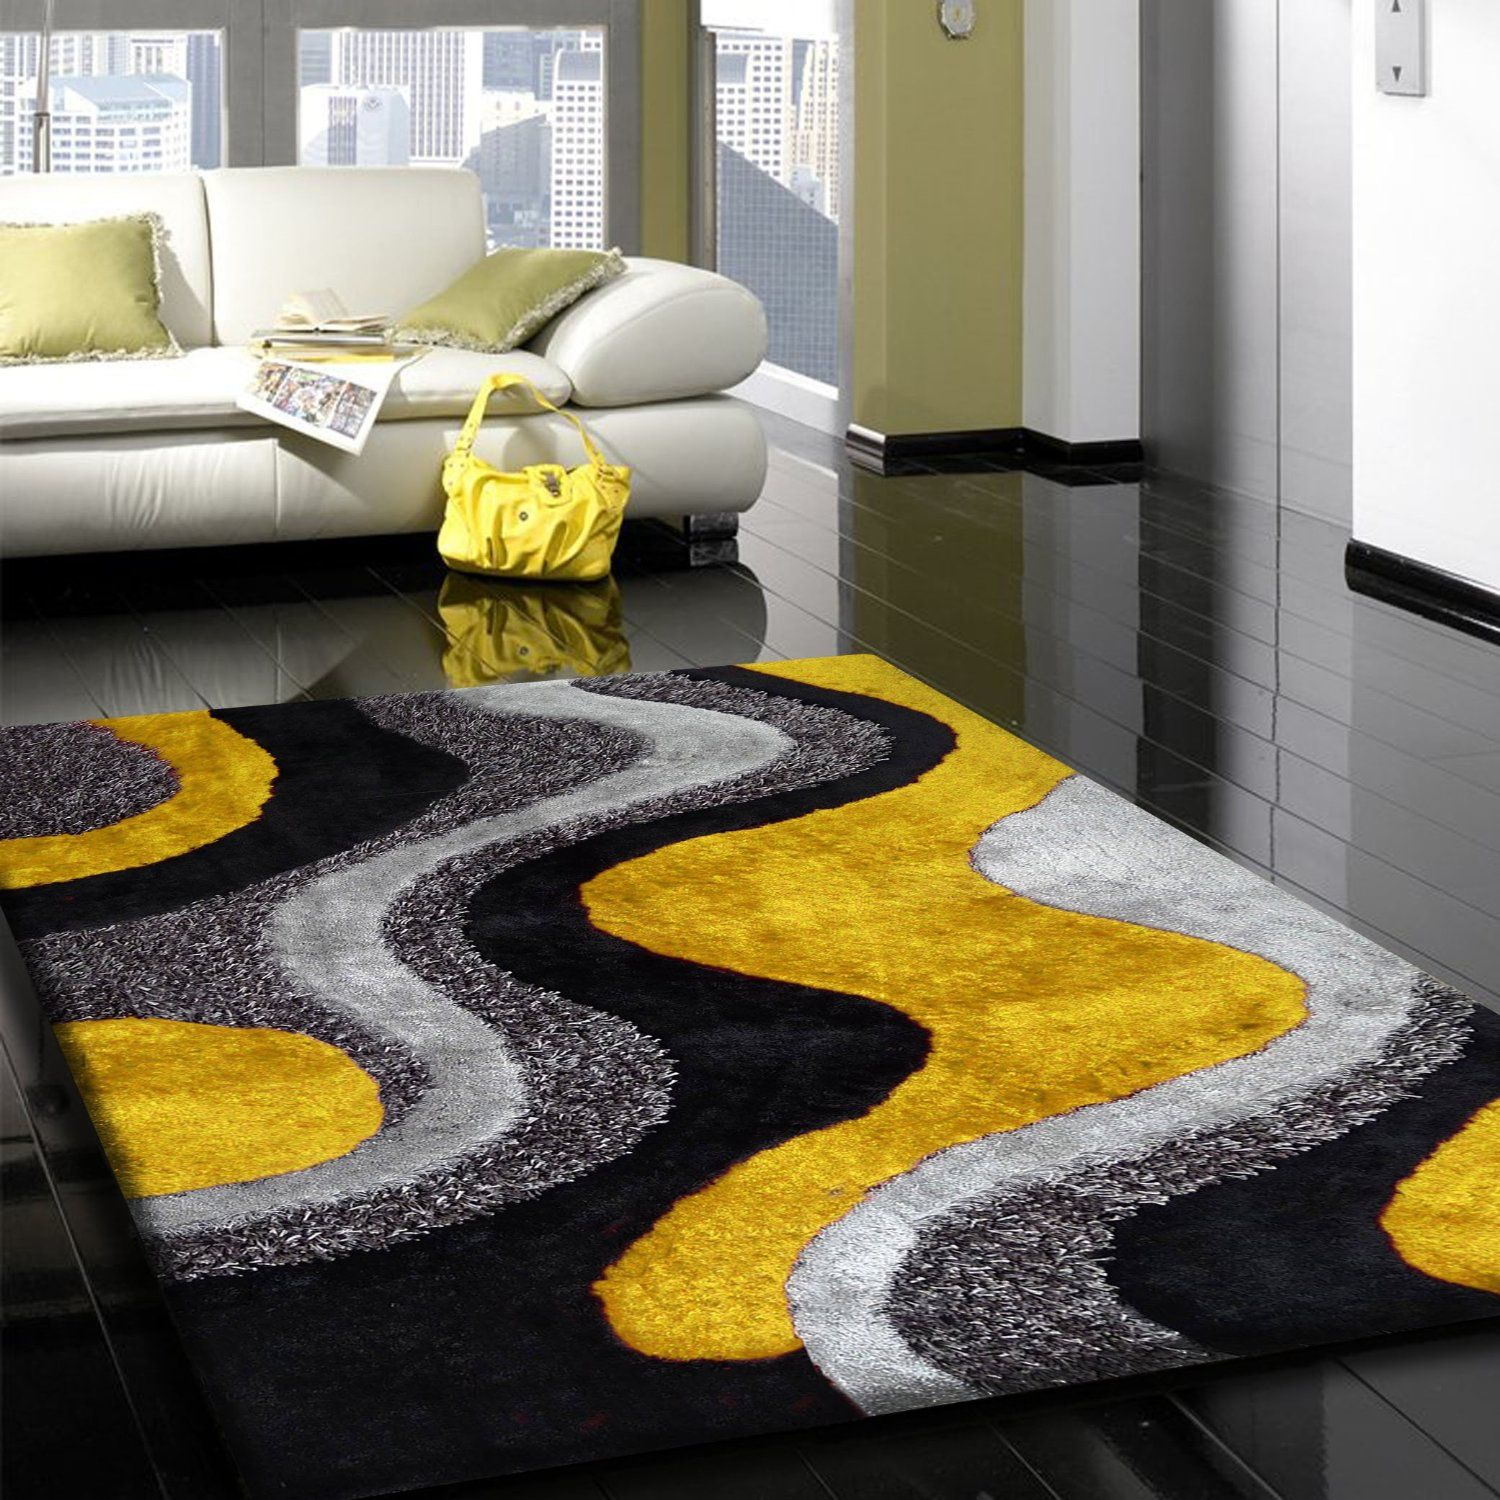 Silk Grey Yellow Carpet Floor Beautiful Spacios Chic